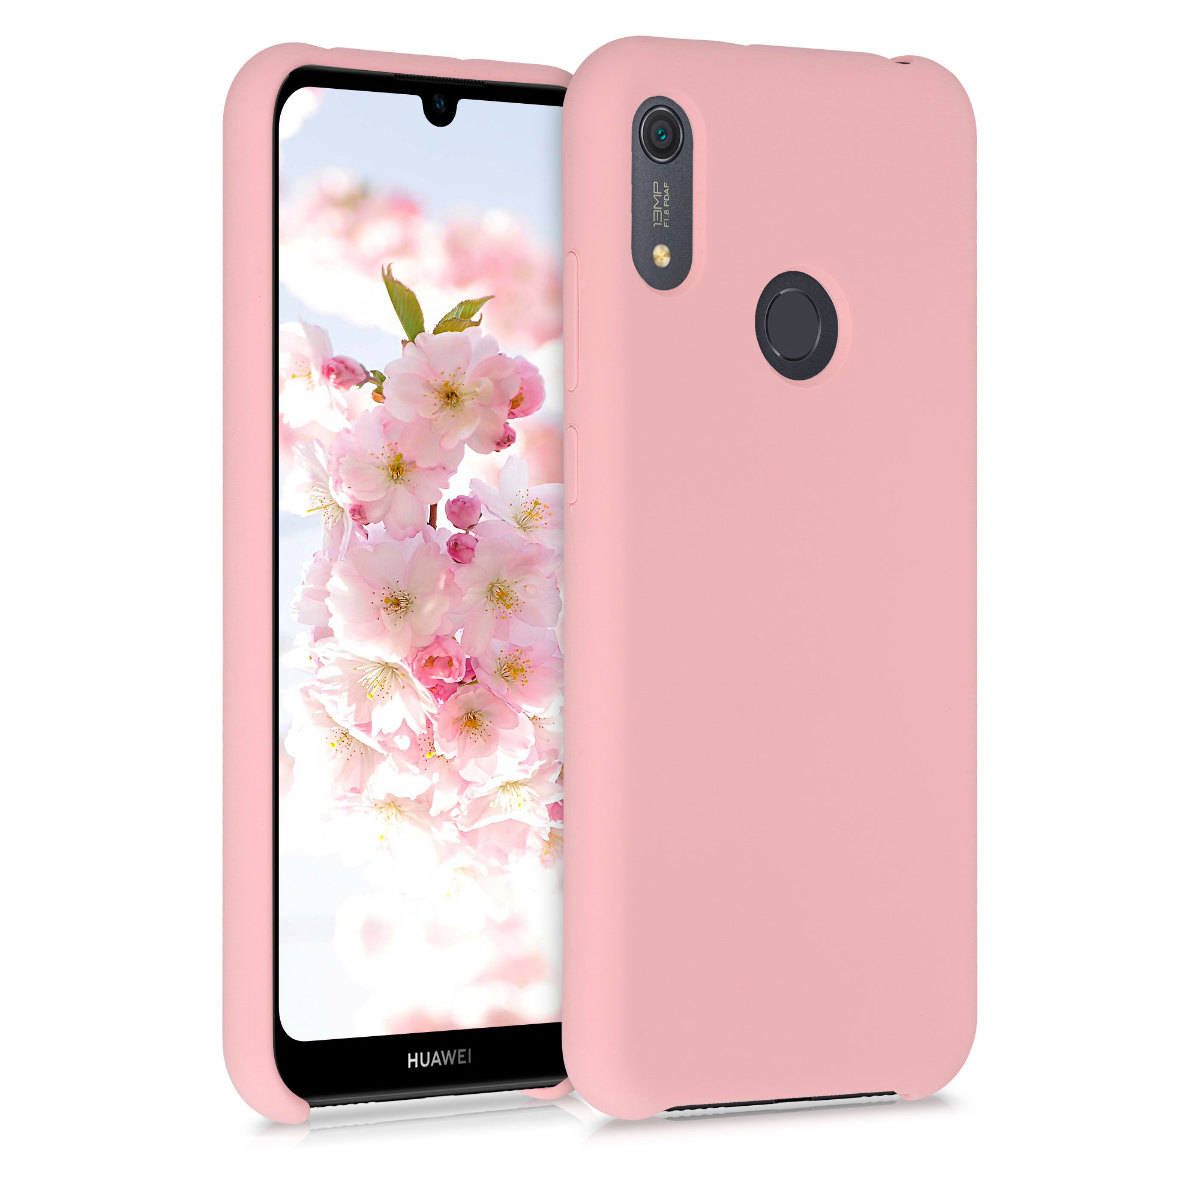 KW Θήκη Σιλικόνης Huawei Y6s 2019 - Soft Flexible Rubber Protective Cover  - Rose Gold Matte (52410.89)